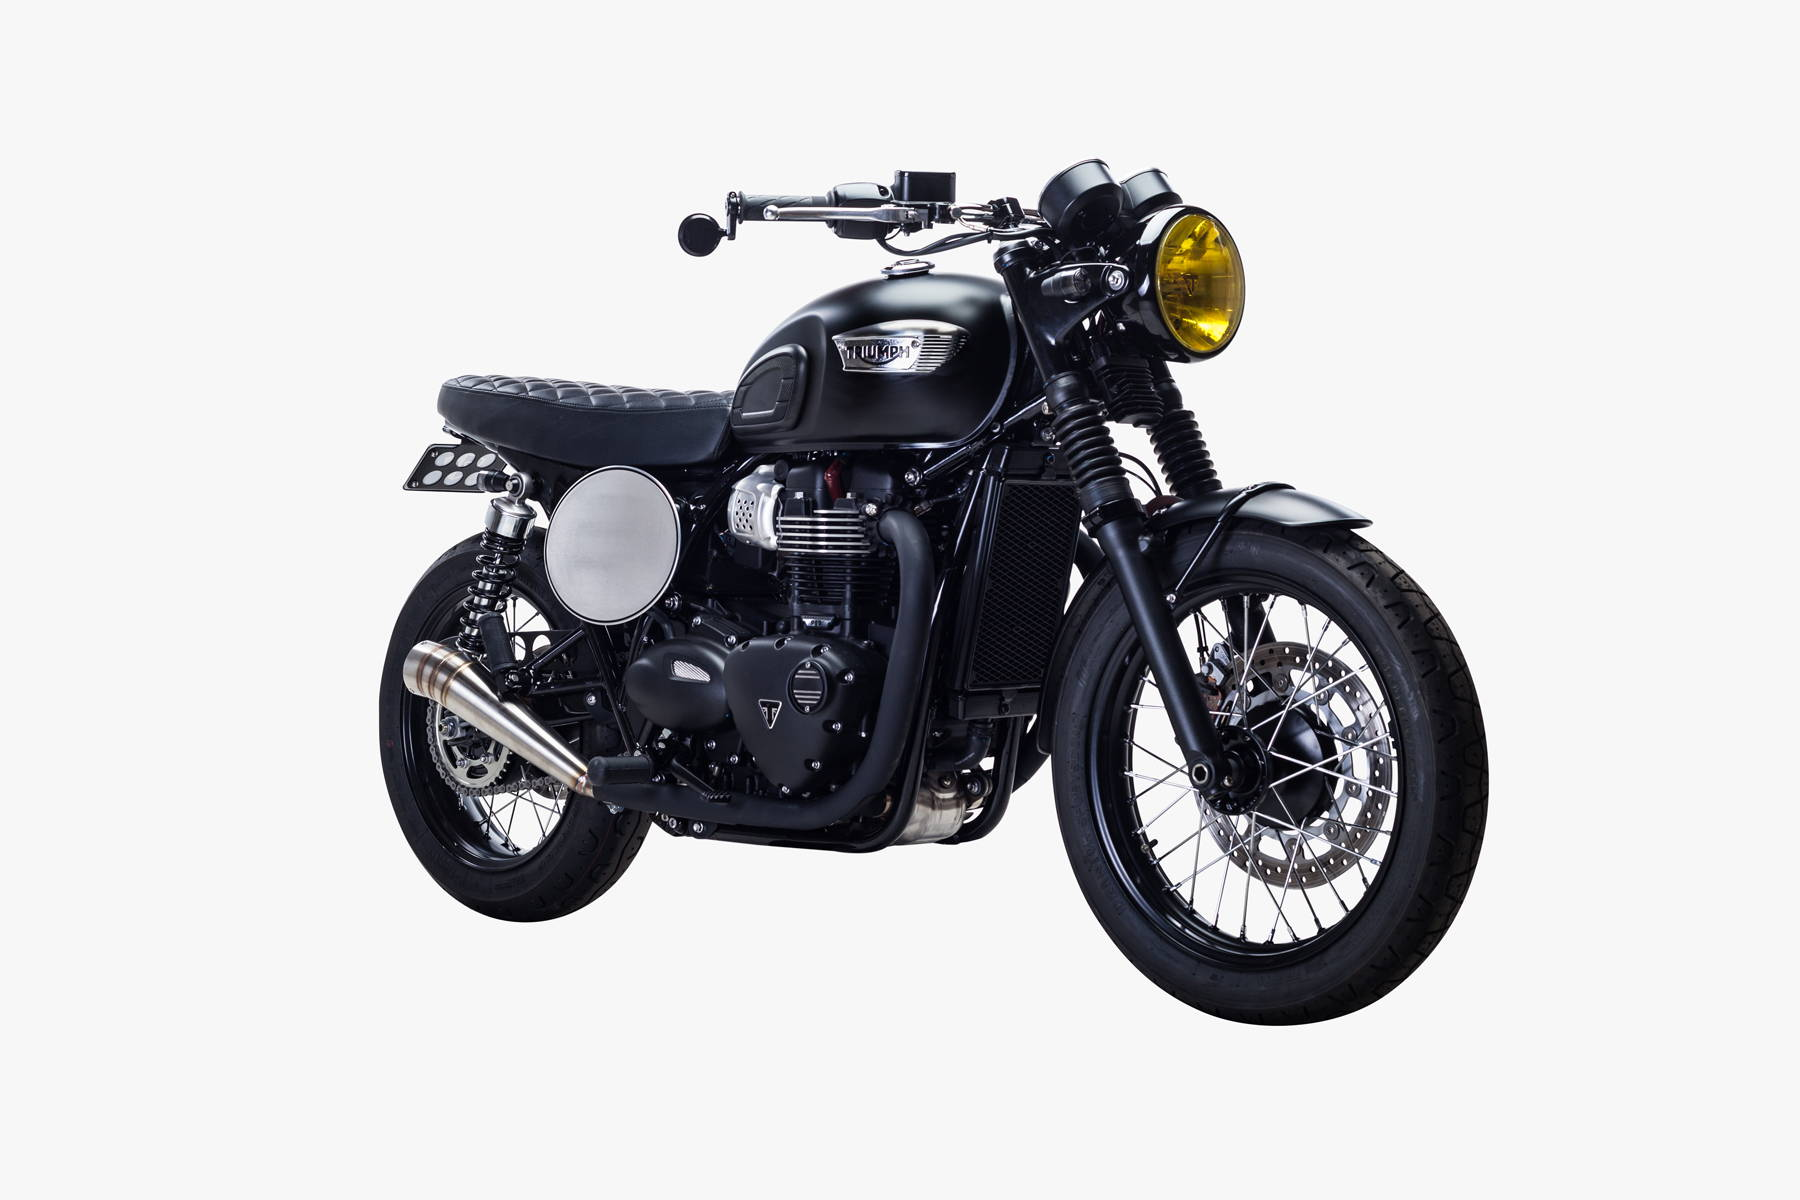 2017 Bonneville T100 Custom Retro Black British Customs